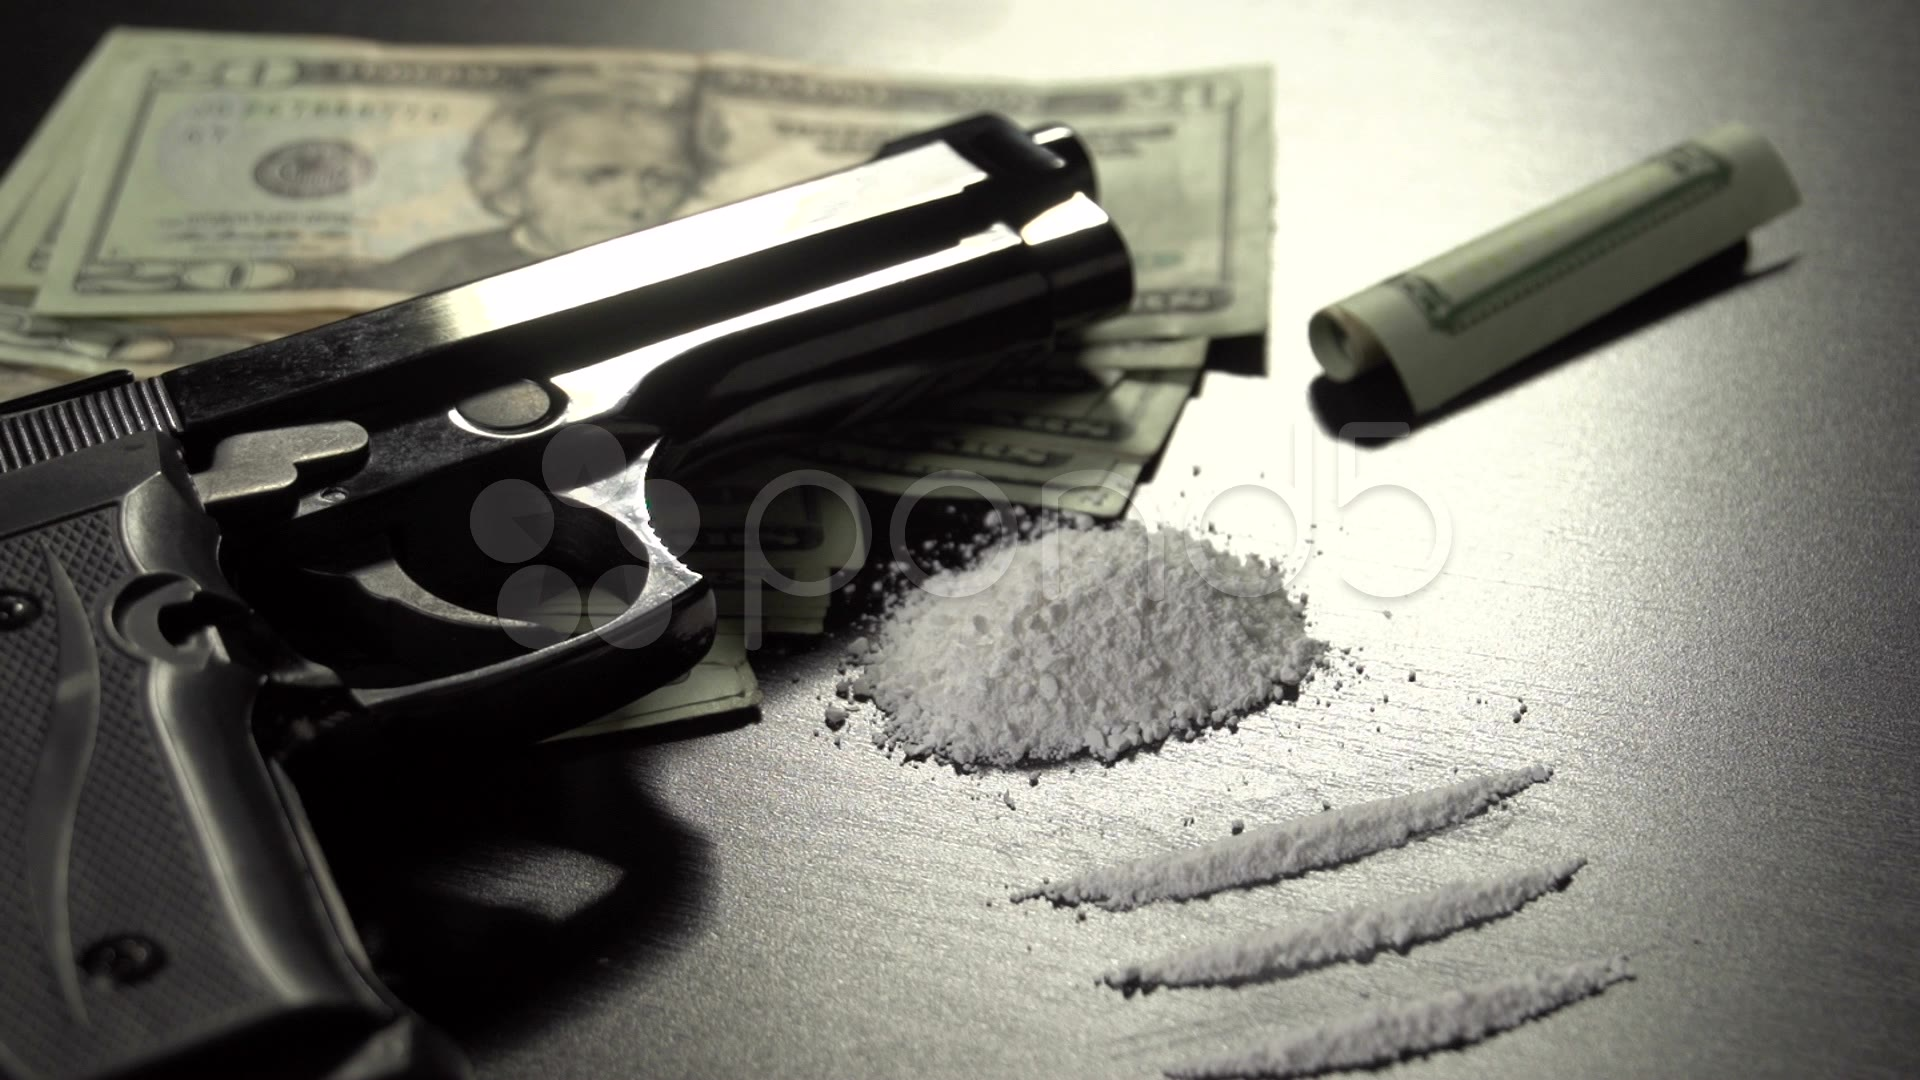 Free Download Cocaine Wallpaper 1920x1080 For Your Desktop